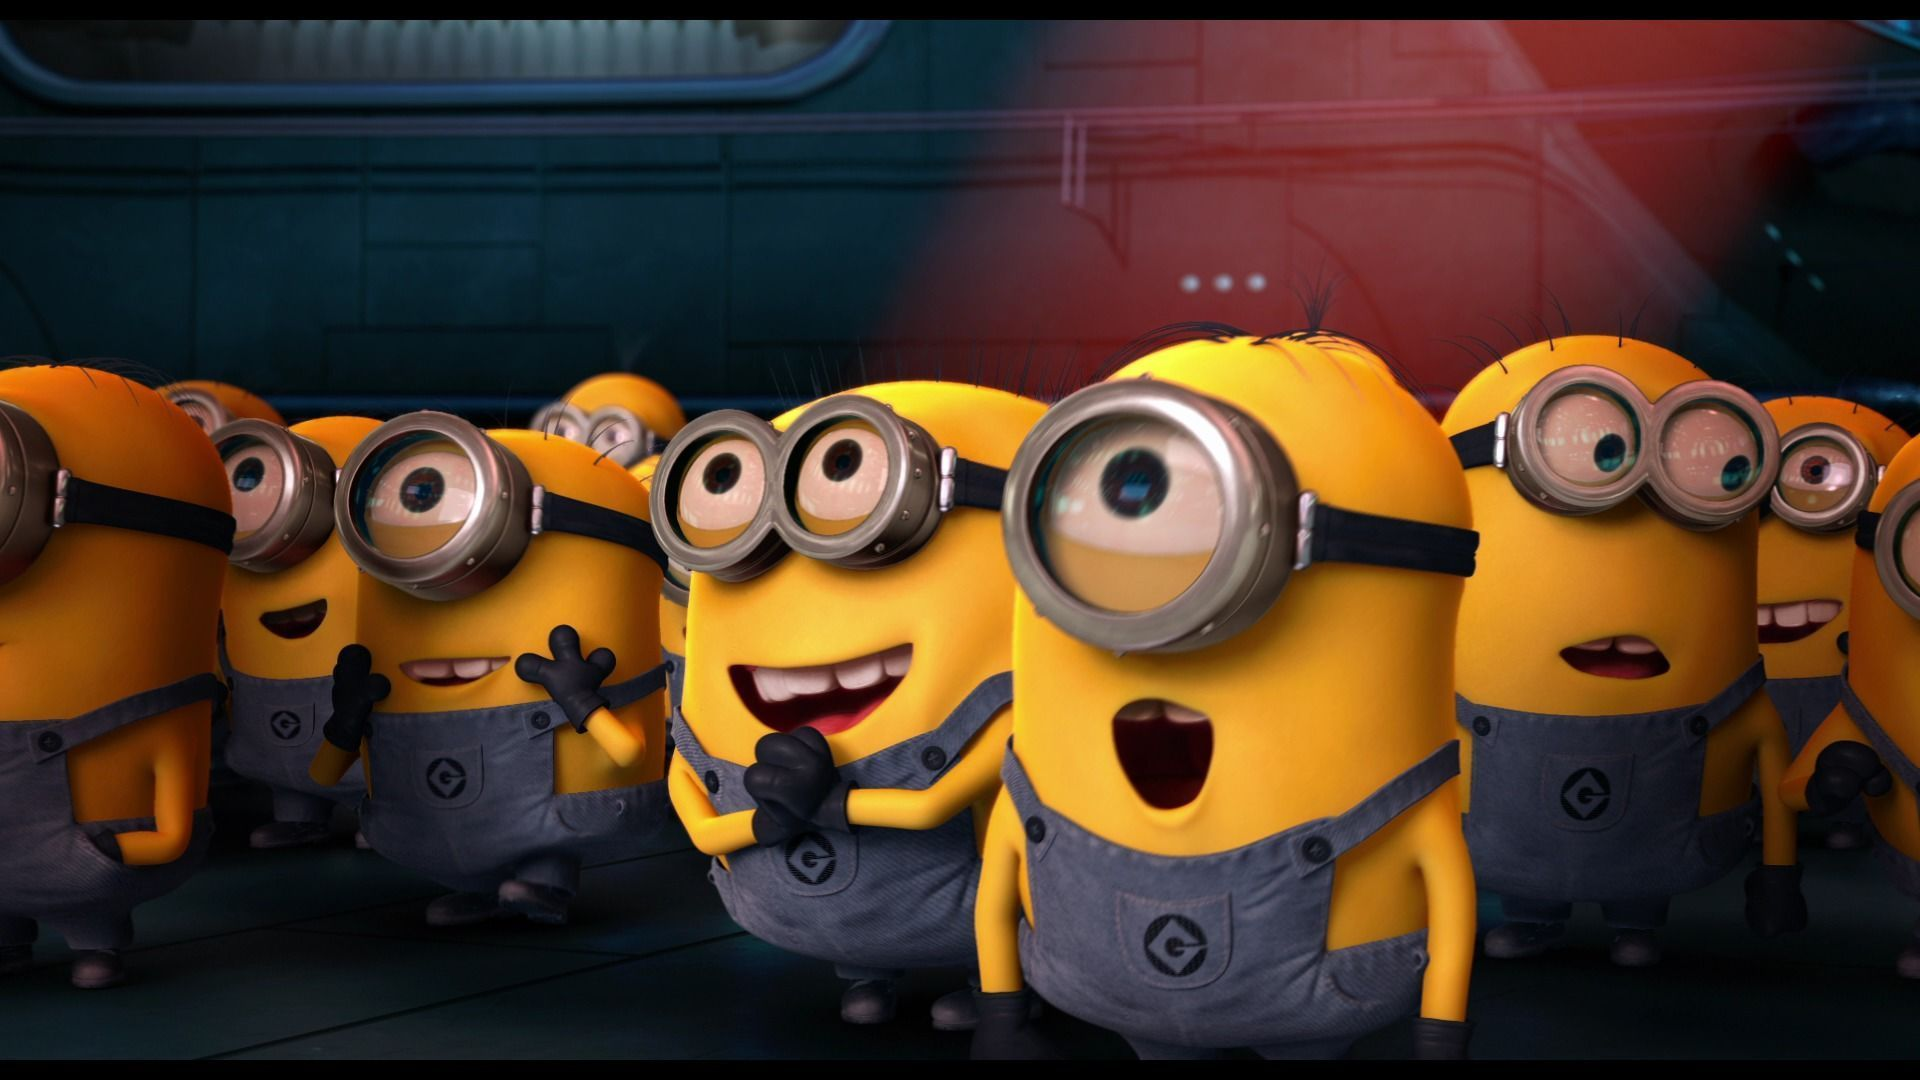 Cute Animation Wallpaper For Mobile Funny Minion Wallpapers Desktop Pixelstalk Net